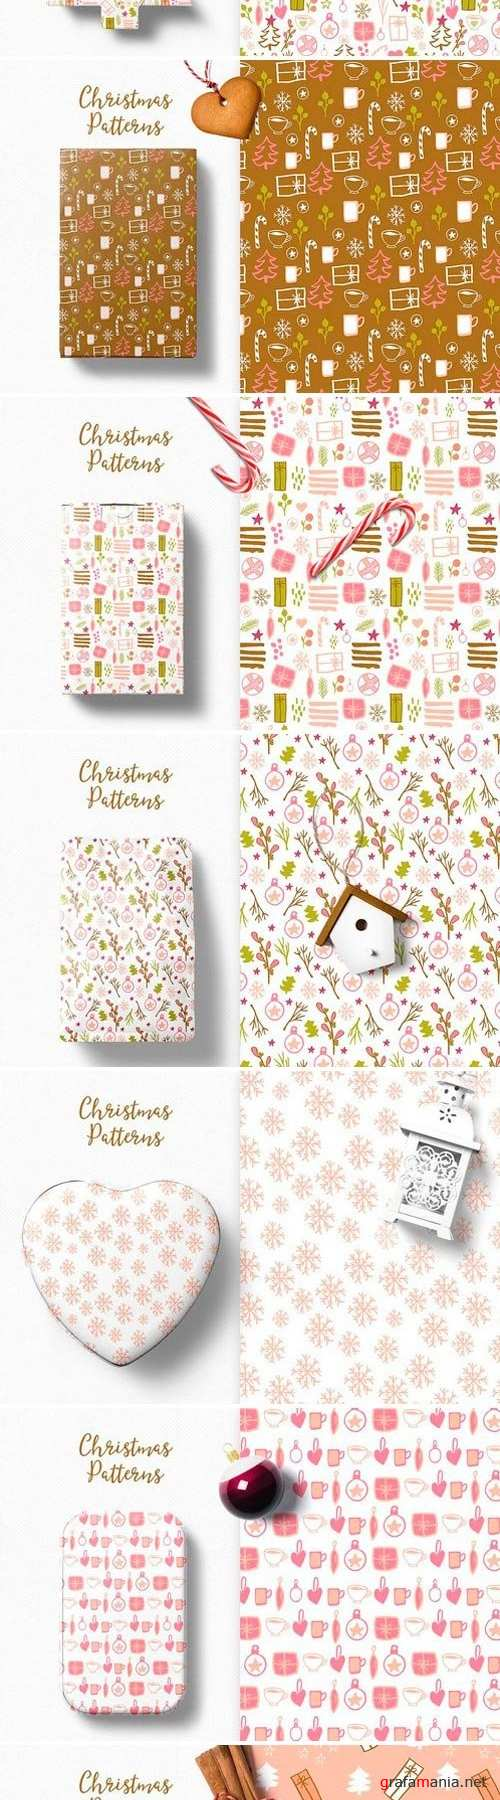 Christmas Patterns 2064144